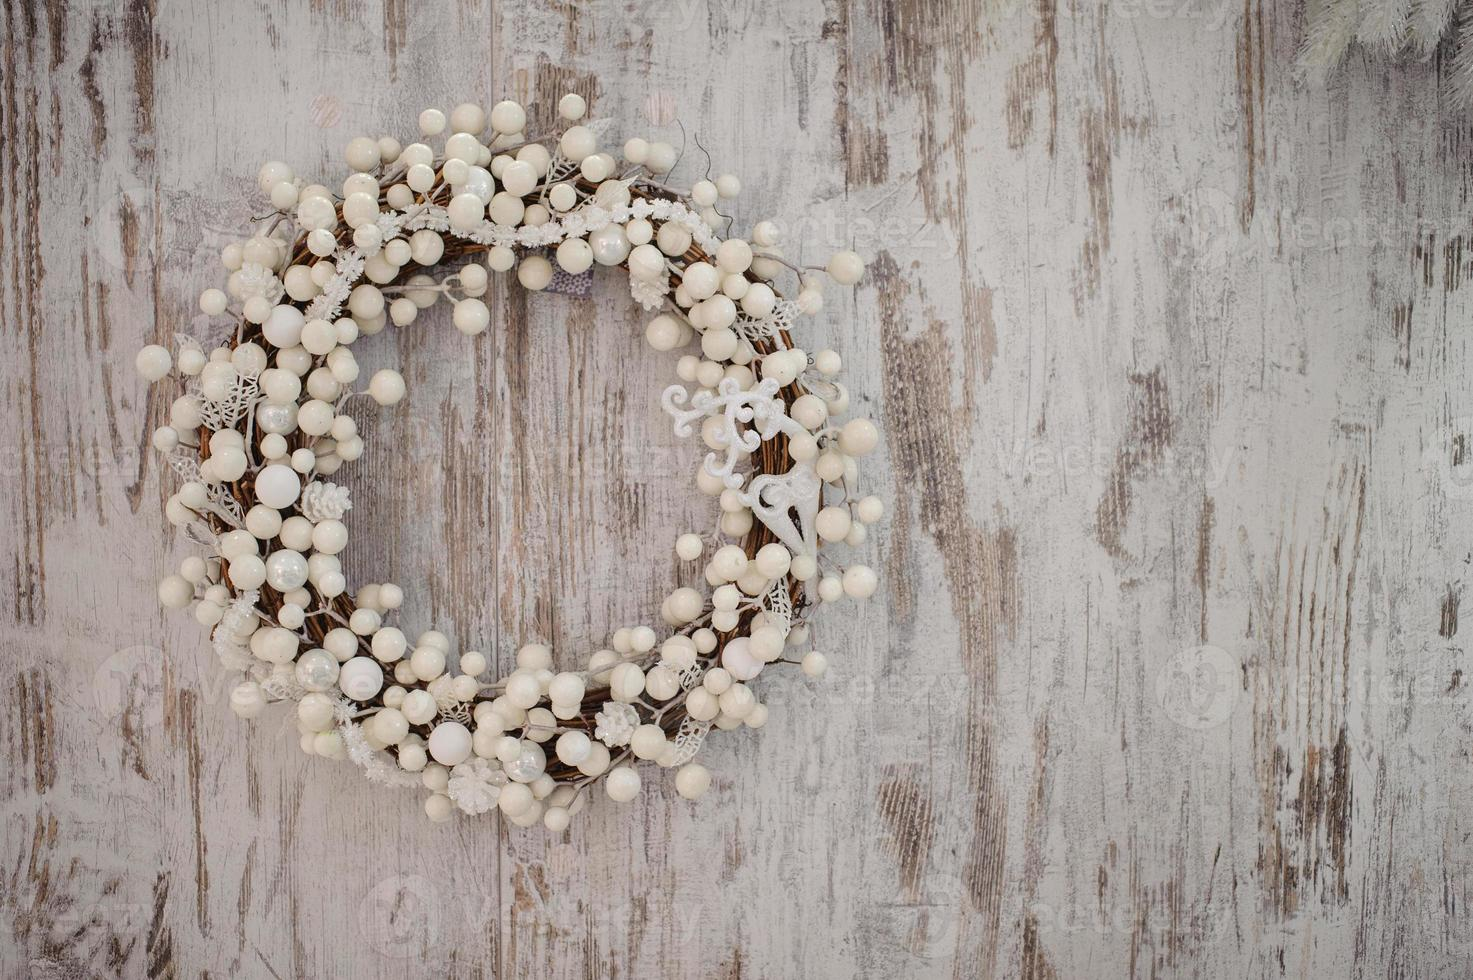 white christmas decorative wreath over wooden background photo